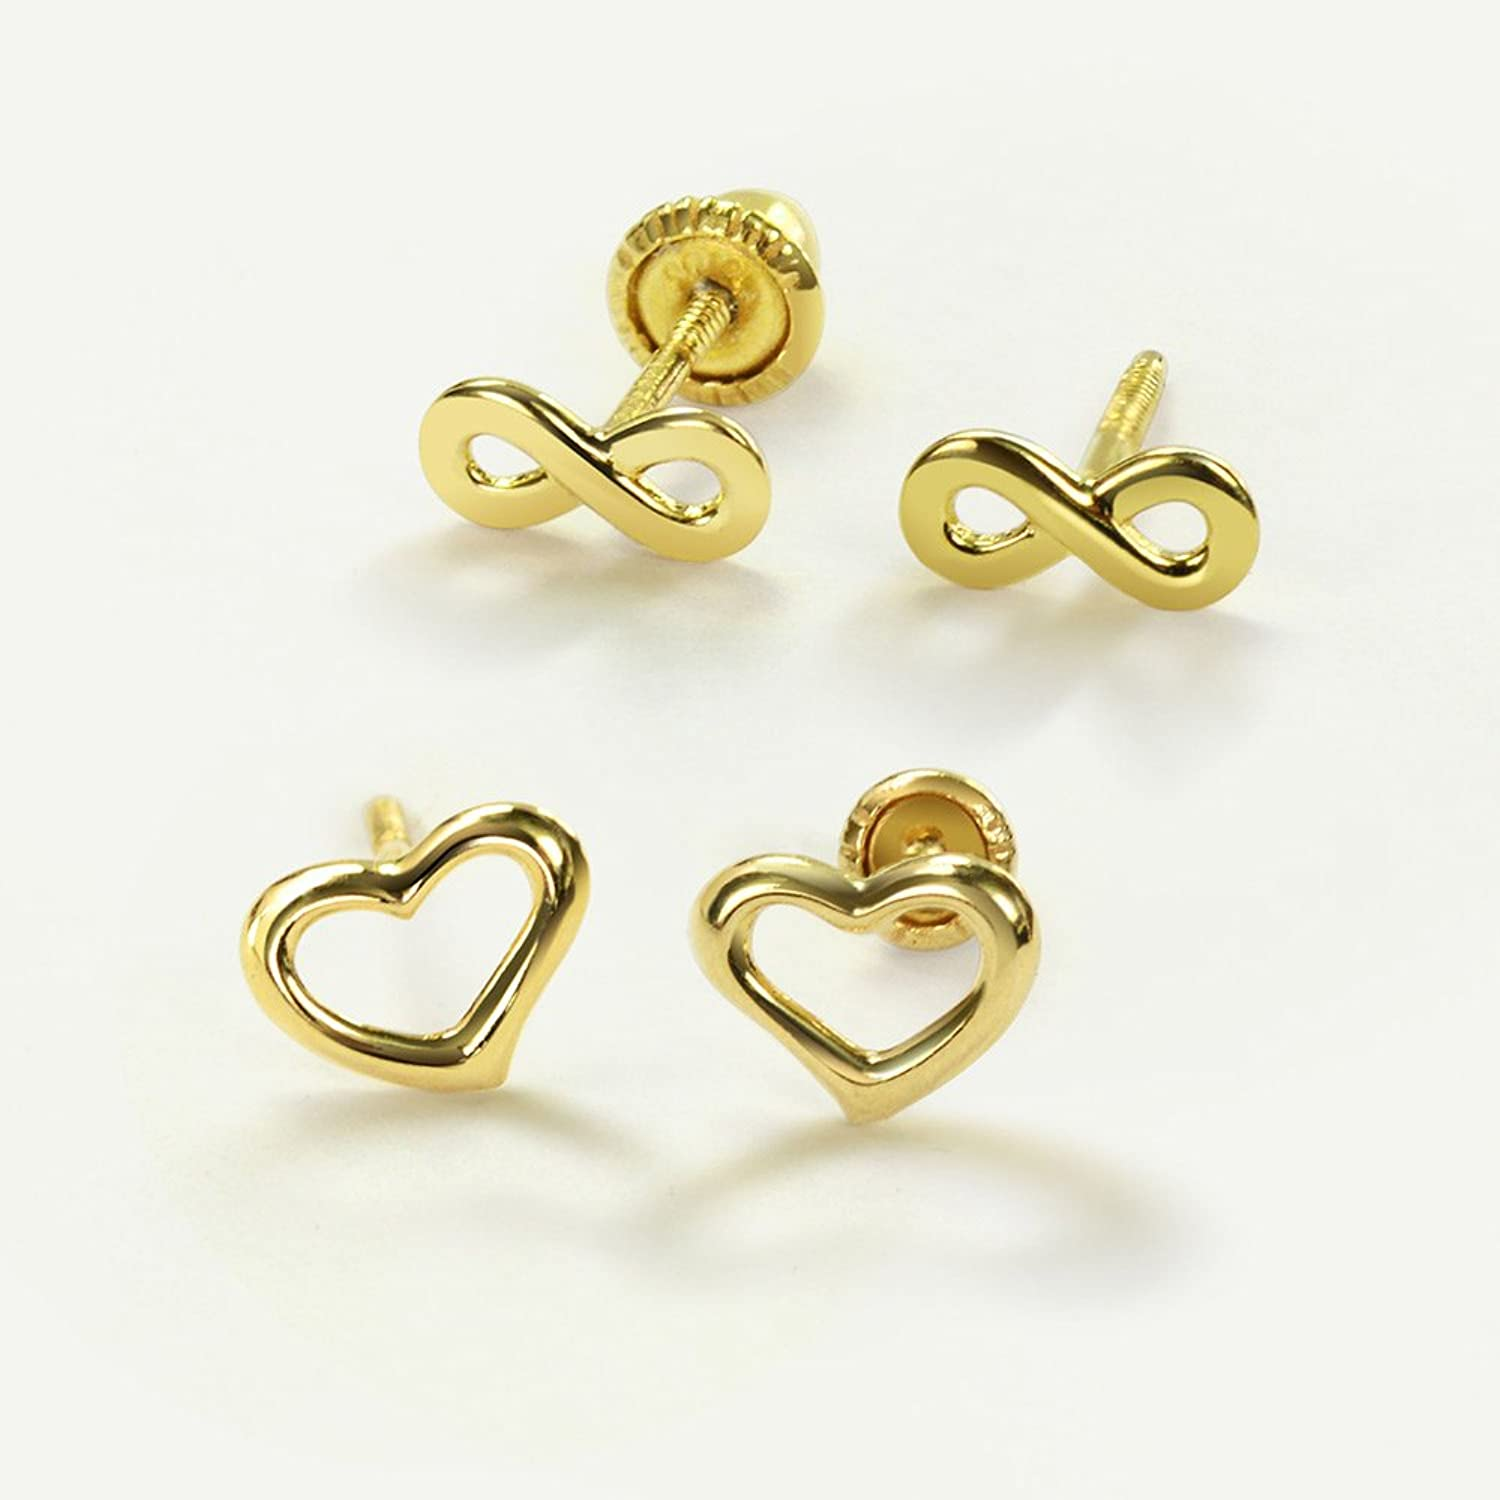 Bling Jewelry 14K Yellow Gold Safety Screwback Heart Studs Baby Earrings clqWBmR